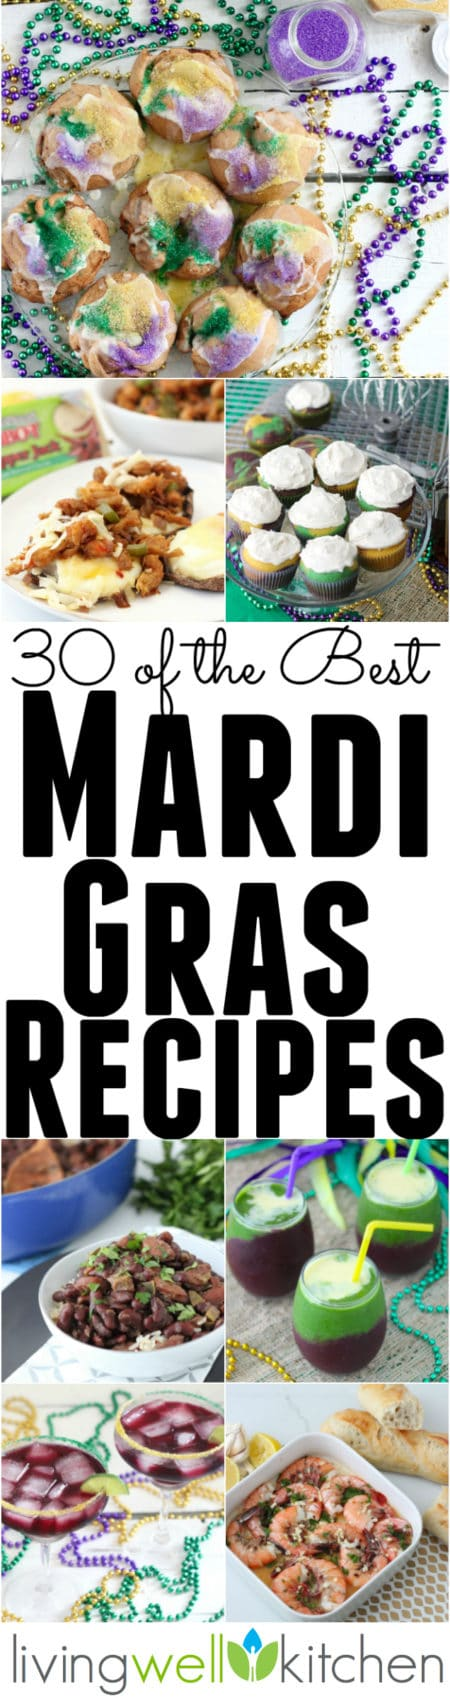 The 30 best recipes for celebrating the Mardi Gras season from @memeinge. From drinks, desserts and main dishes, you'll find something to inspire your Mardi Gras feast. Recipes for all dietary preferences, so you can make everyone at the party happy